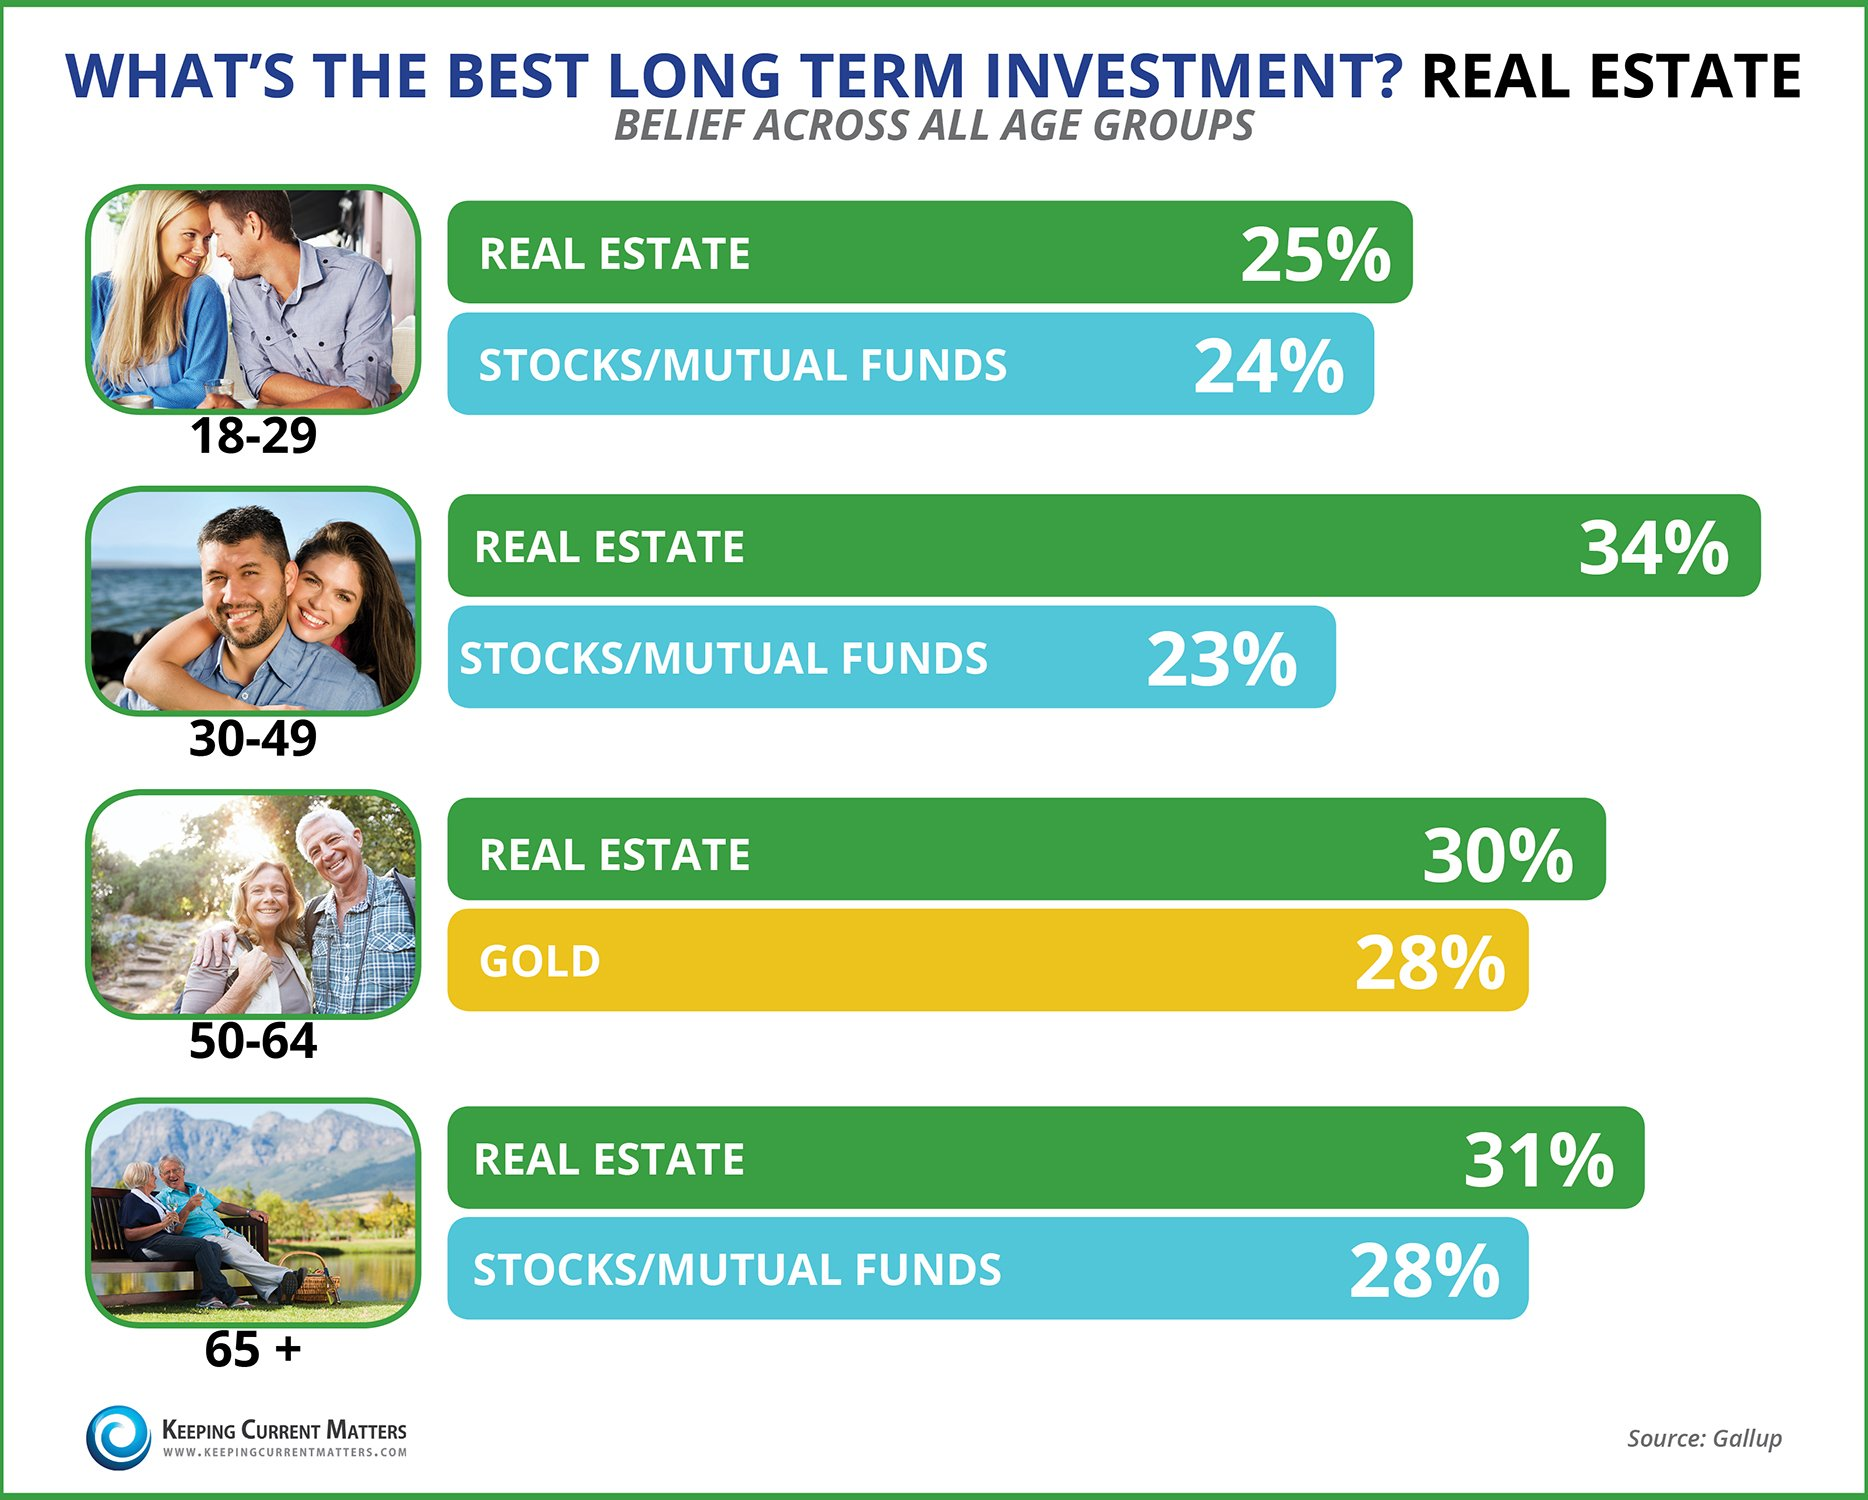 Real Estate: Best Long Term Investment | Keeping Current Matters